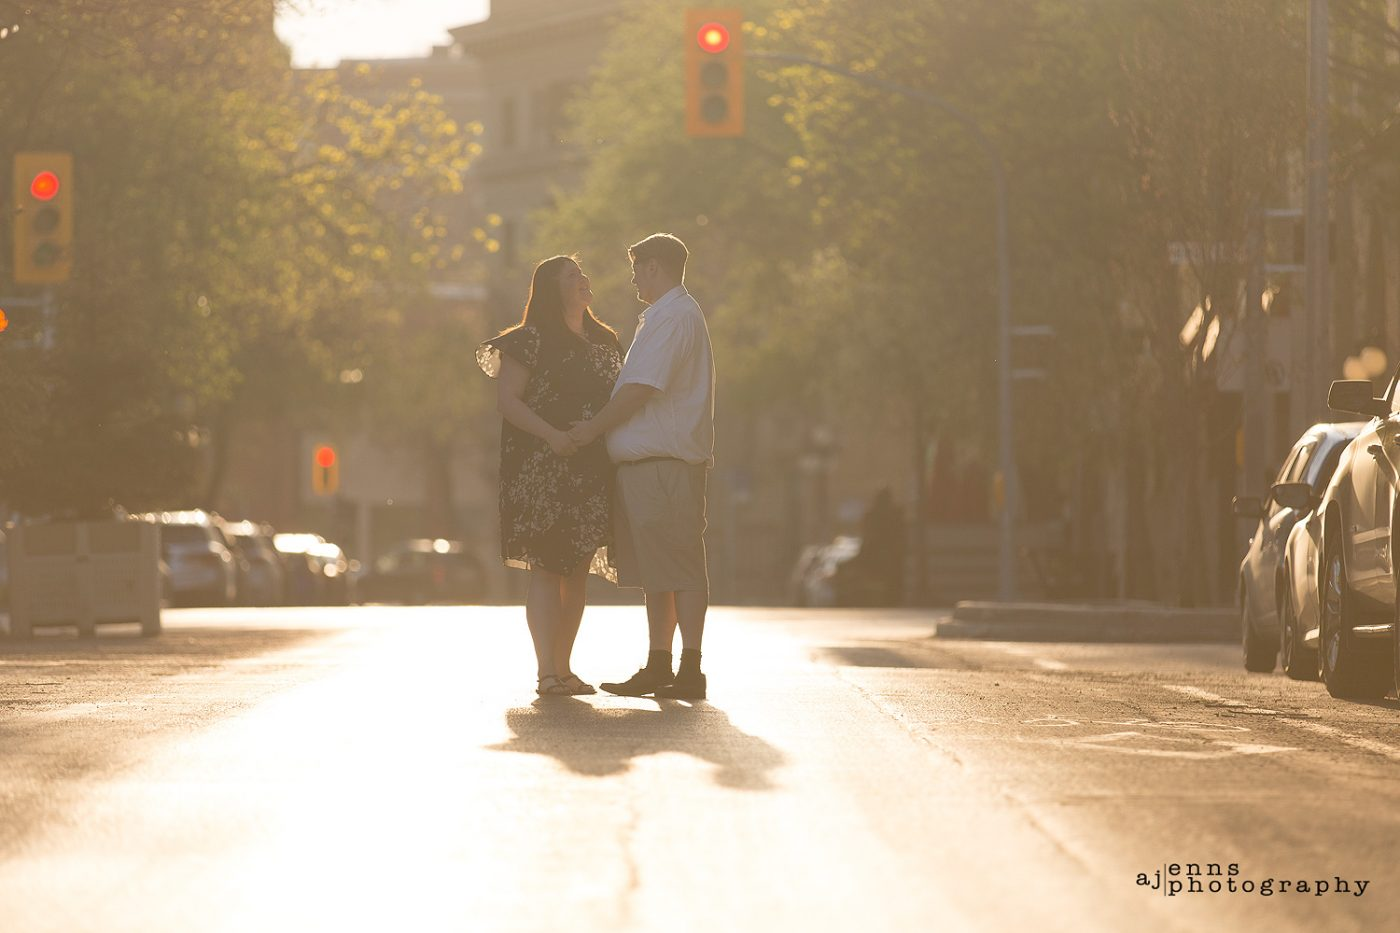 Holding hands in the middle of the street in the exchange district